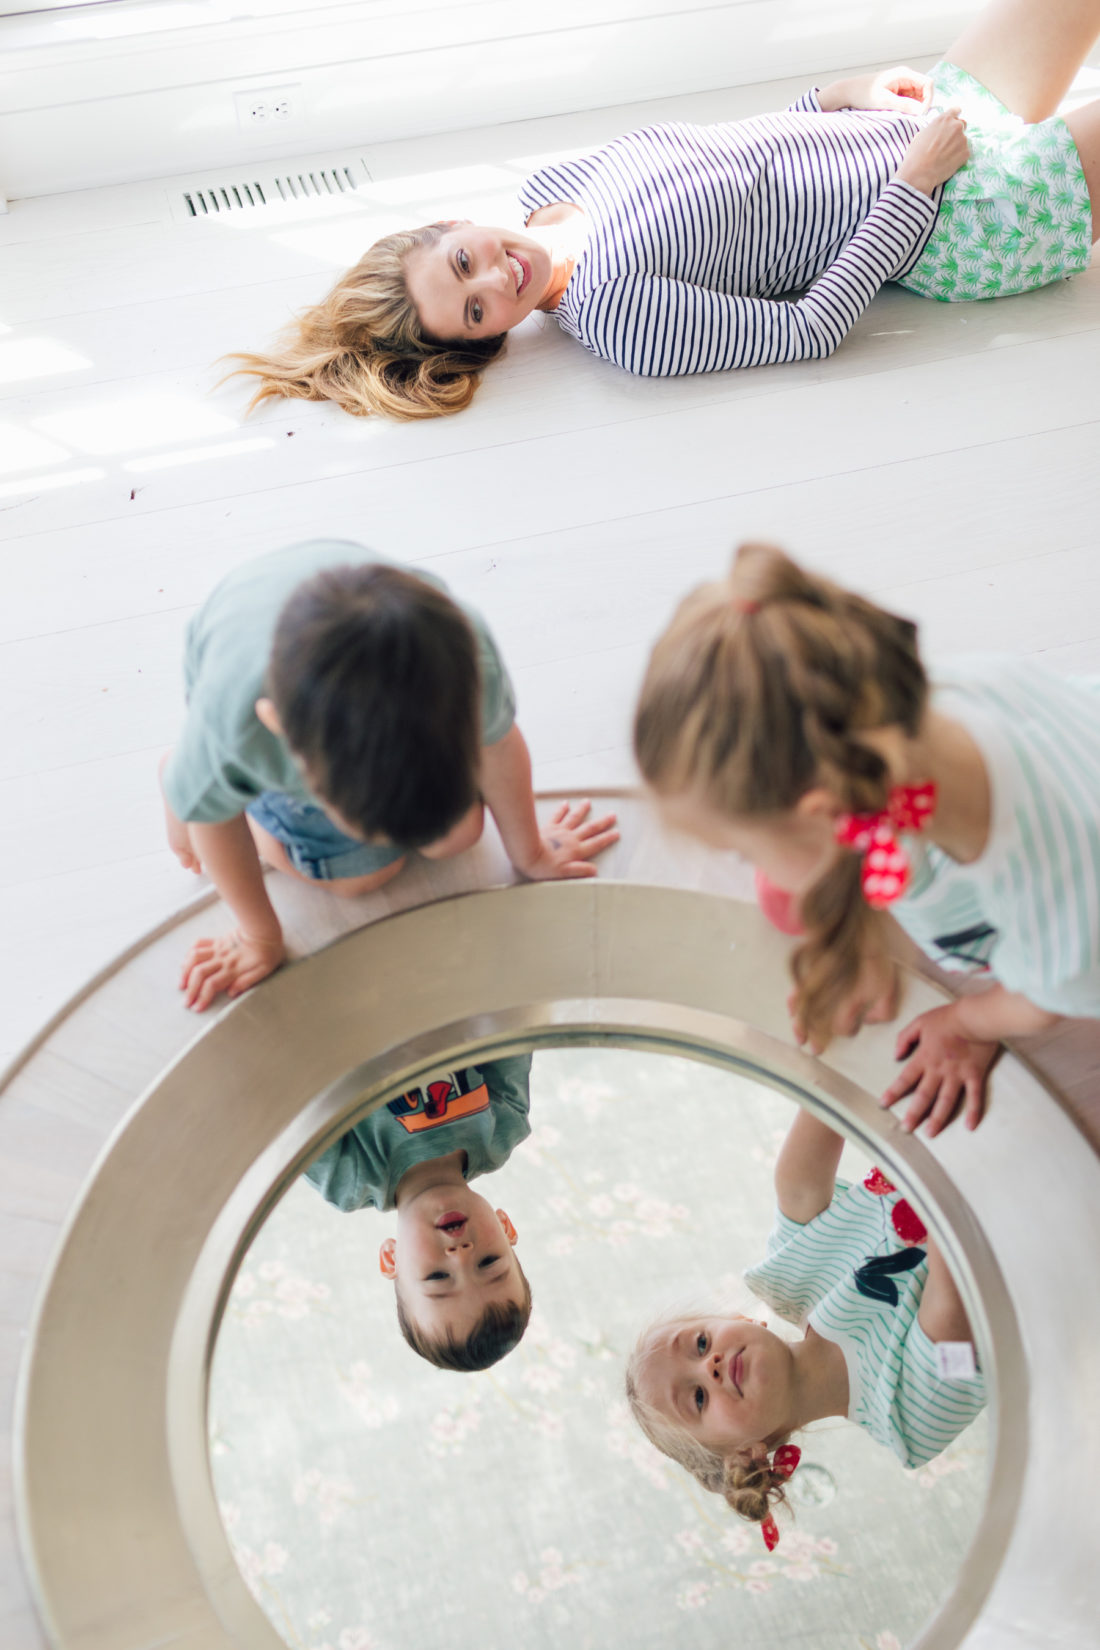 Eva Amurri Martino's kids Marlowe and Major look into a mirror in their new home in Connecticut